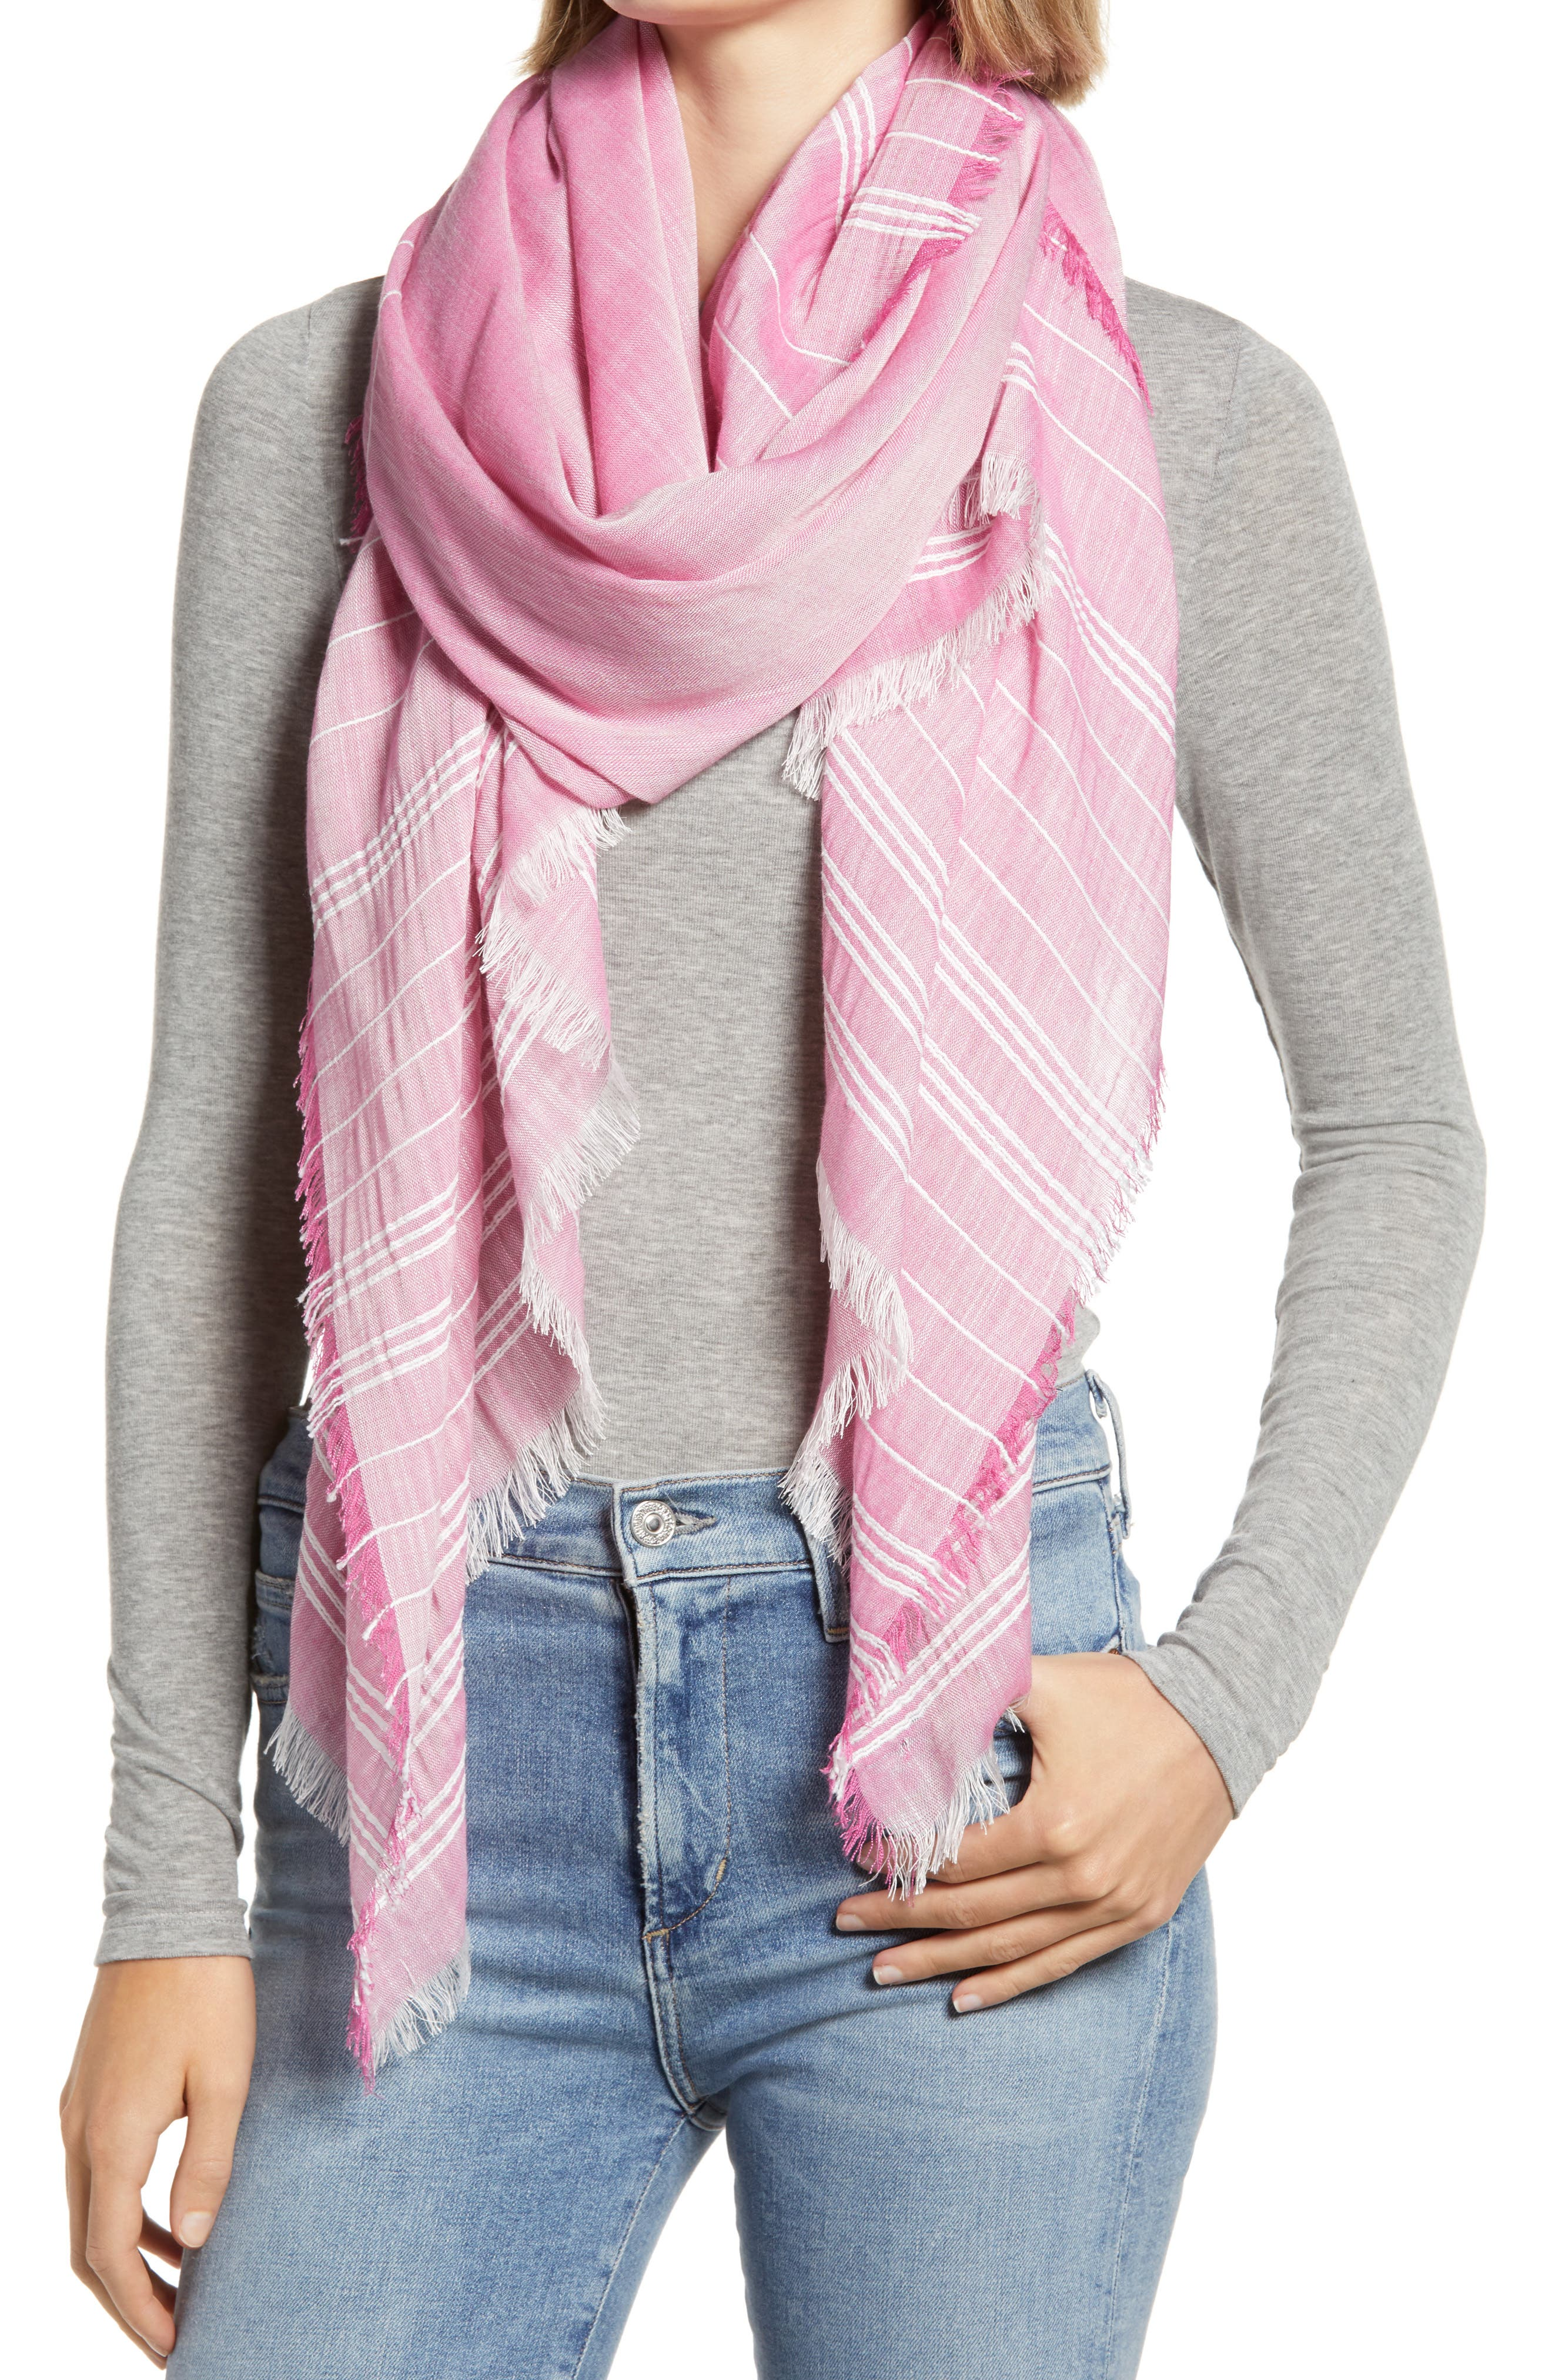 This striped, fringe-trimmed scarf made from a lightweight cotton blend is one of those season-spanning accessories that pulls together any outfit in a snap. When you buy Treasure & Bond, Nordstrom will donate 2.5% of net sales to organizations that work to empower youth. Style Name: Treasure & Bond Stripe Cotton Blend Scarf. Style Number: 5984696. Available in stores.